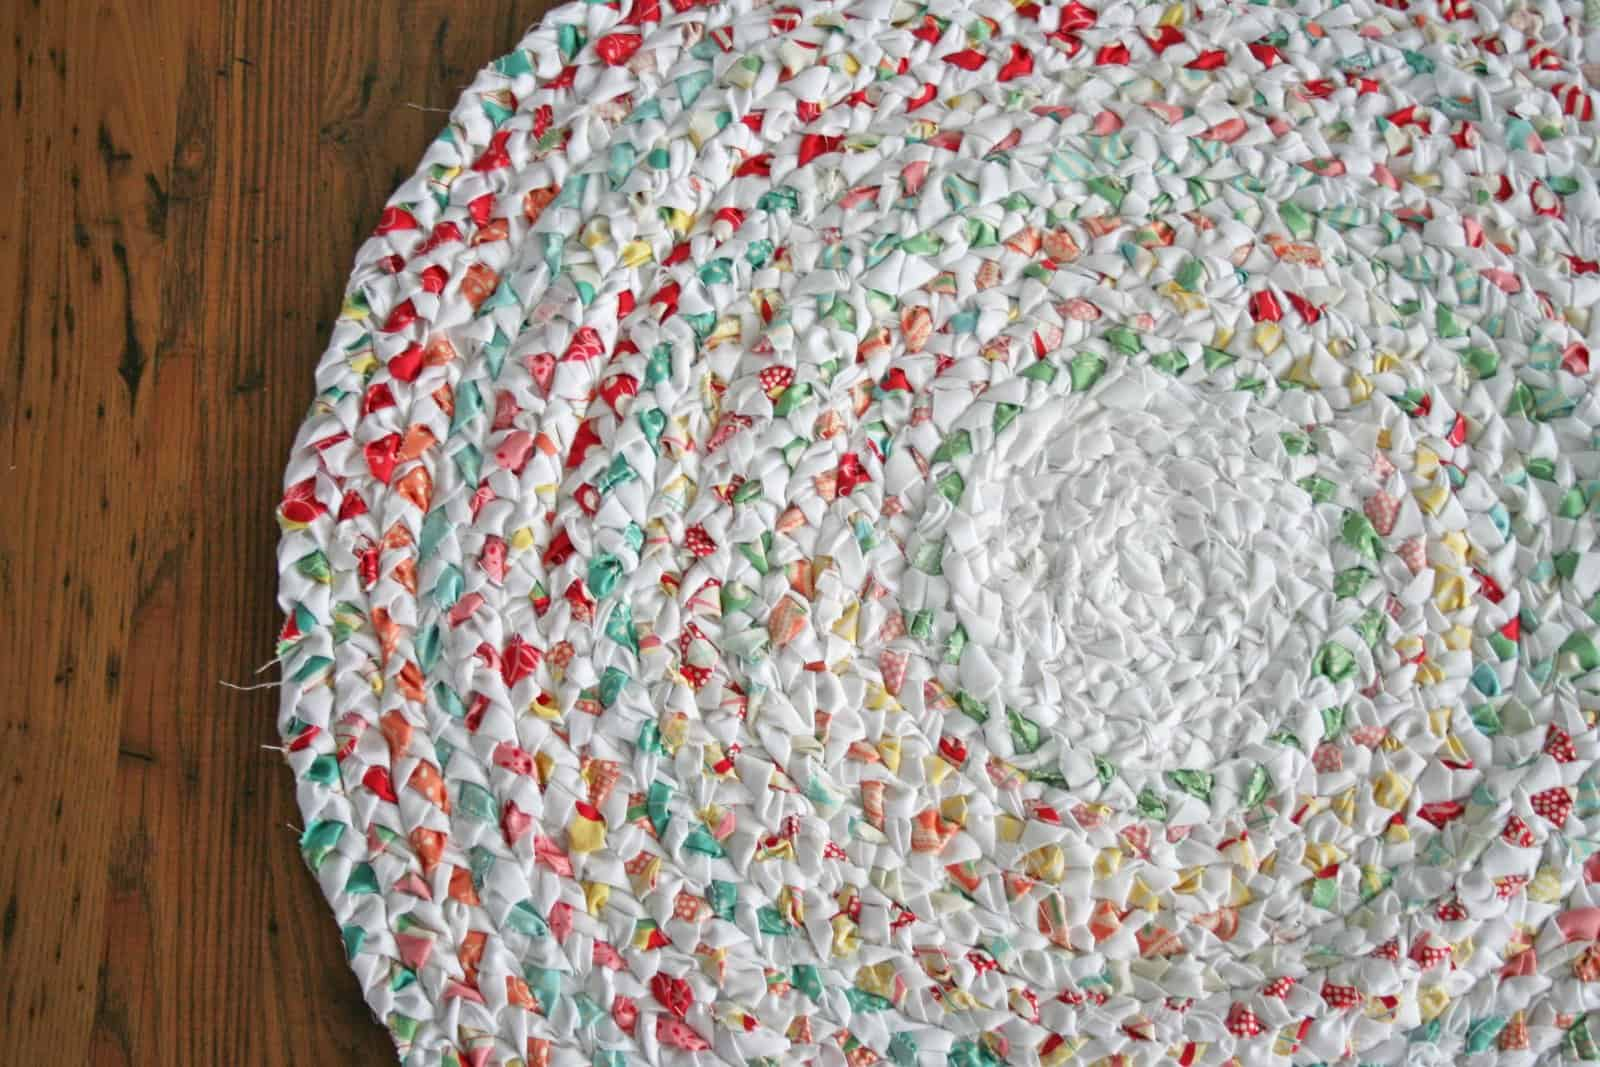 Diy Rag Rugs That Are Super Fun To Make